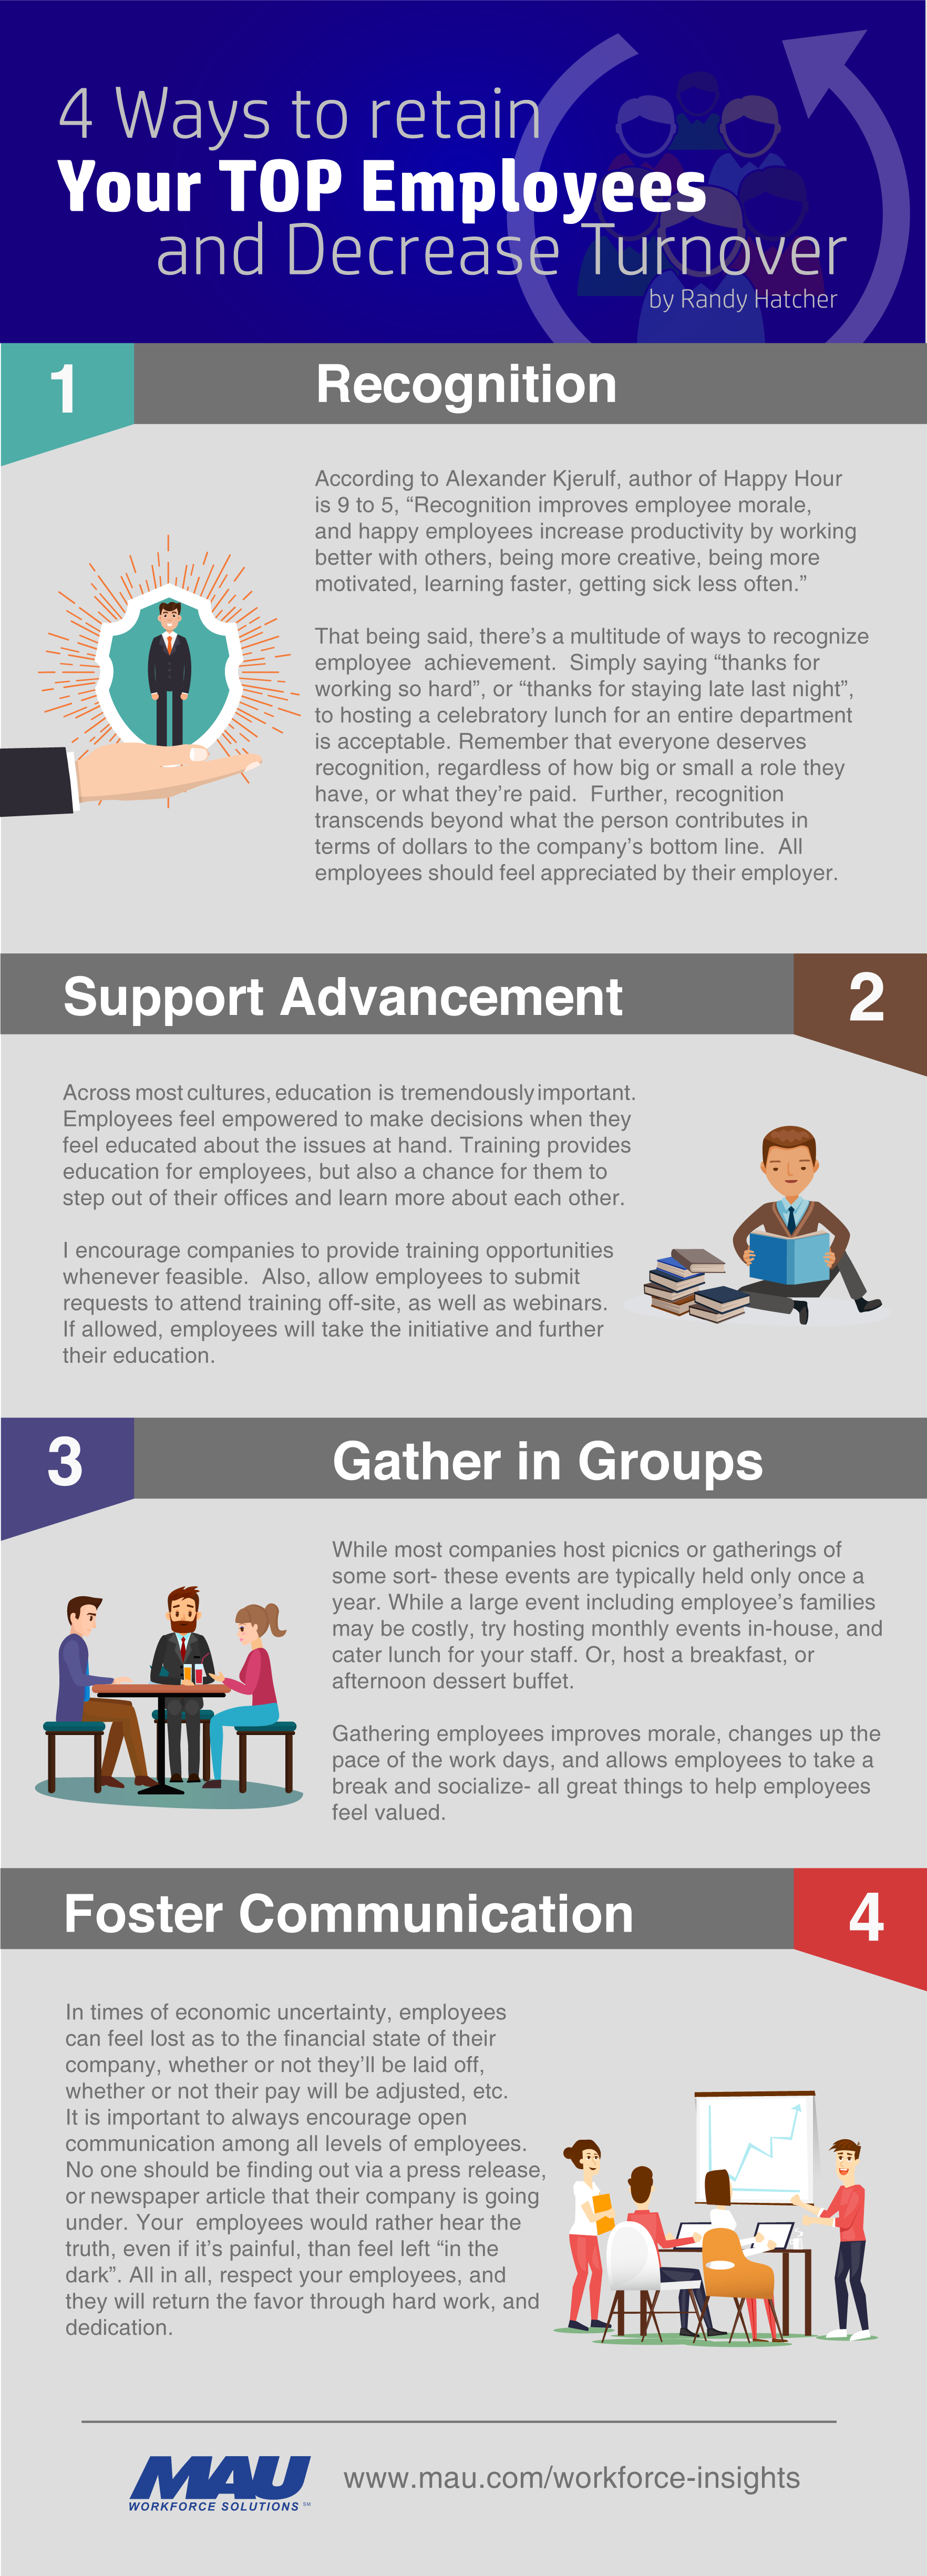 Four Vehicles to Retain TOP Employees in the Auto Industry [Infographic]